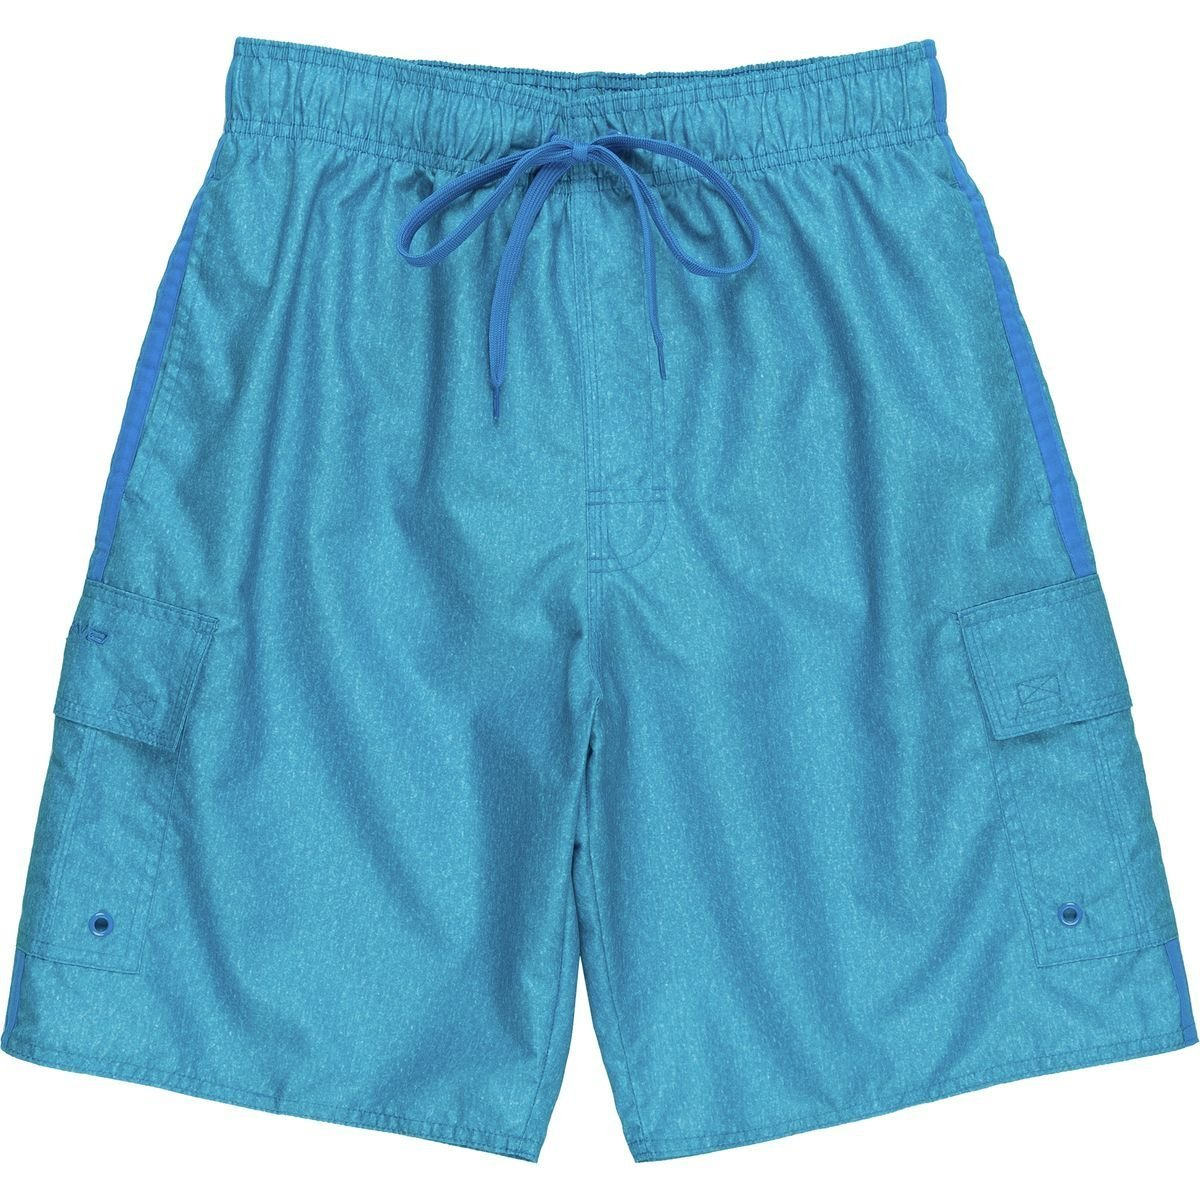 2846668ab11ef LAGUNA Mens Locked-in Elastic Waistband Bathing Shorts with Lace-up  Drawstring in Ocean Blue, Size M